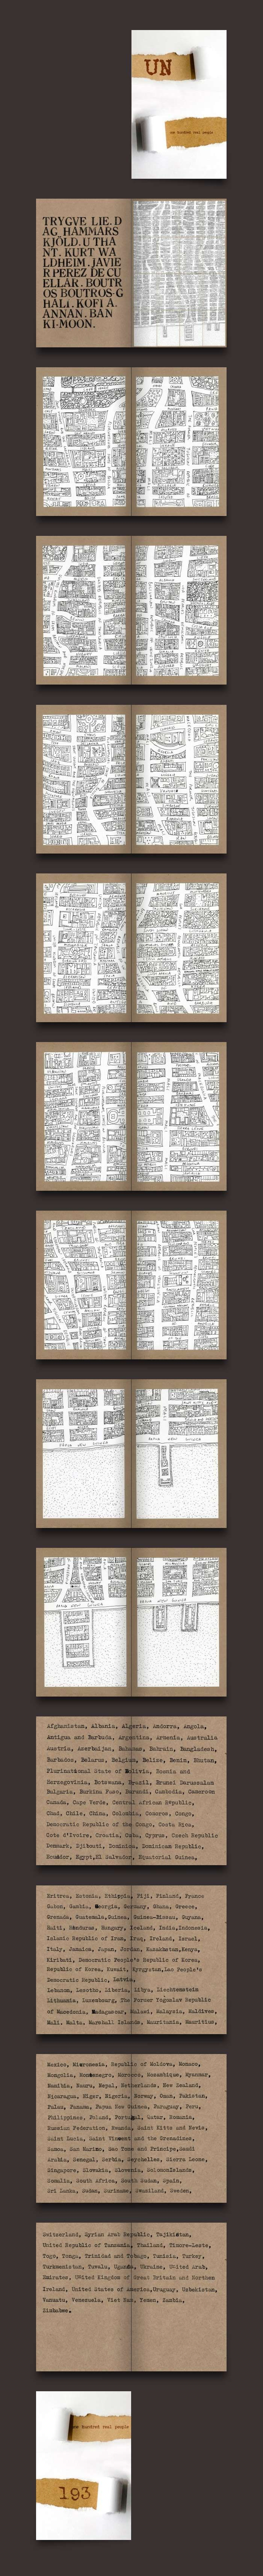 UN. A book which consists of a hand drawn map over 16 postcards with a road for each of the 193 United Nations Members and a list of those countries. Hand drawn maps, Rubber stamp print and typewriter.     Printed on demand by Magcloud:    http://www.magcloud.com/browse/issue/358923